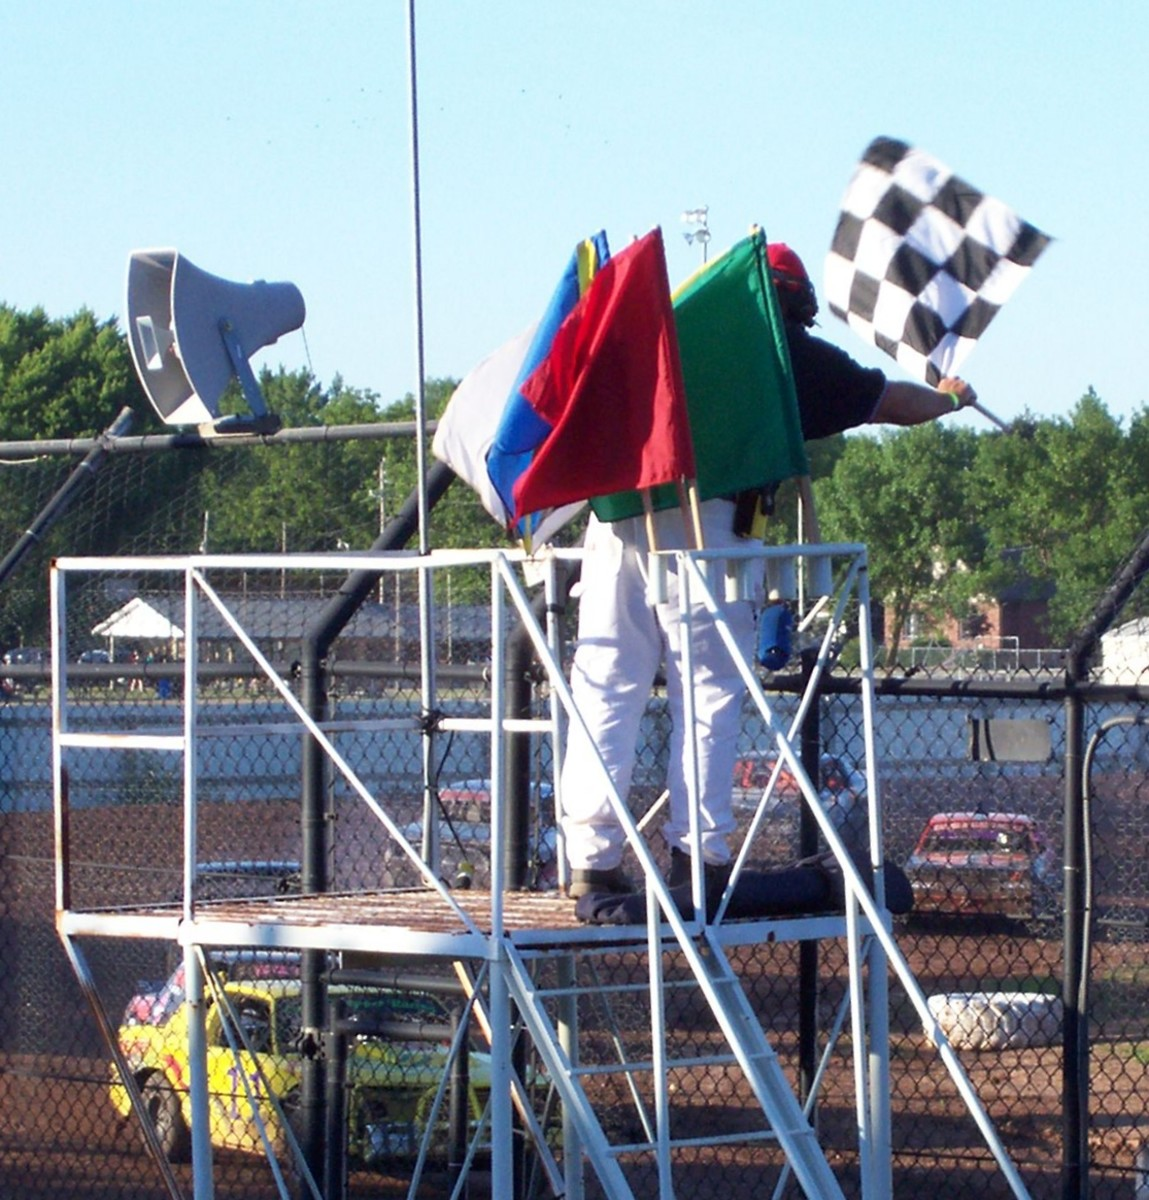 Auto Racing Flags: What Do the Colors Mean?